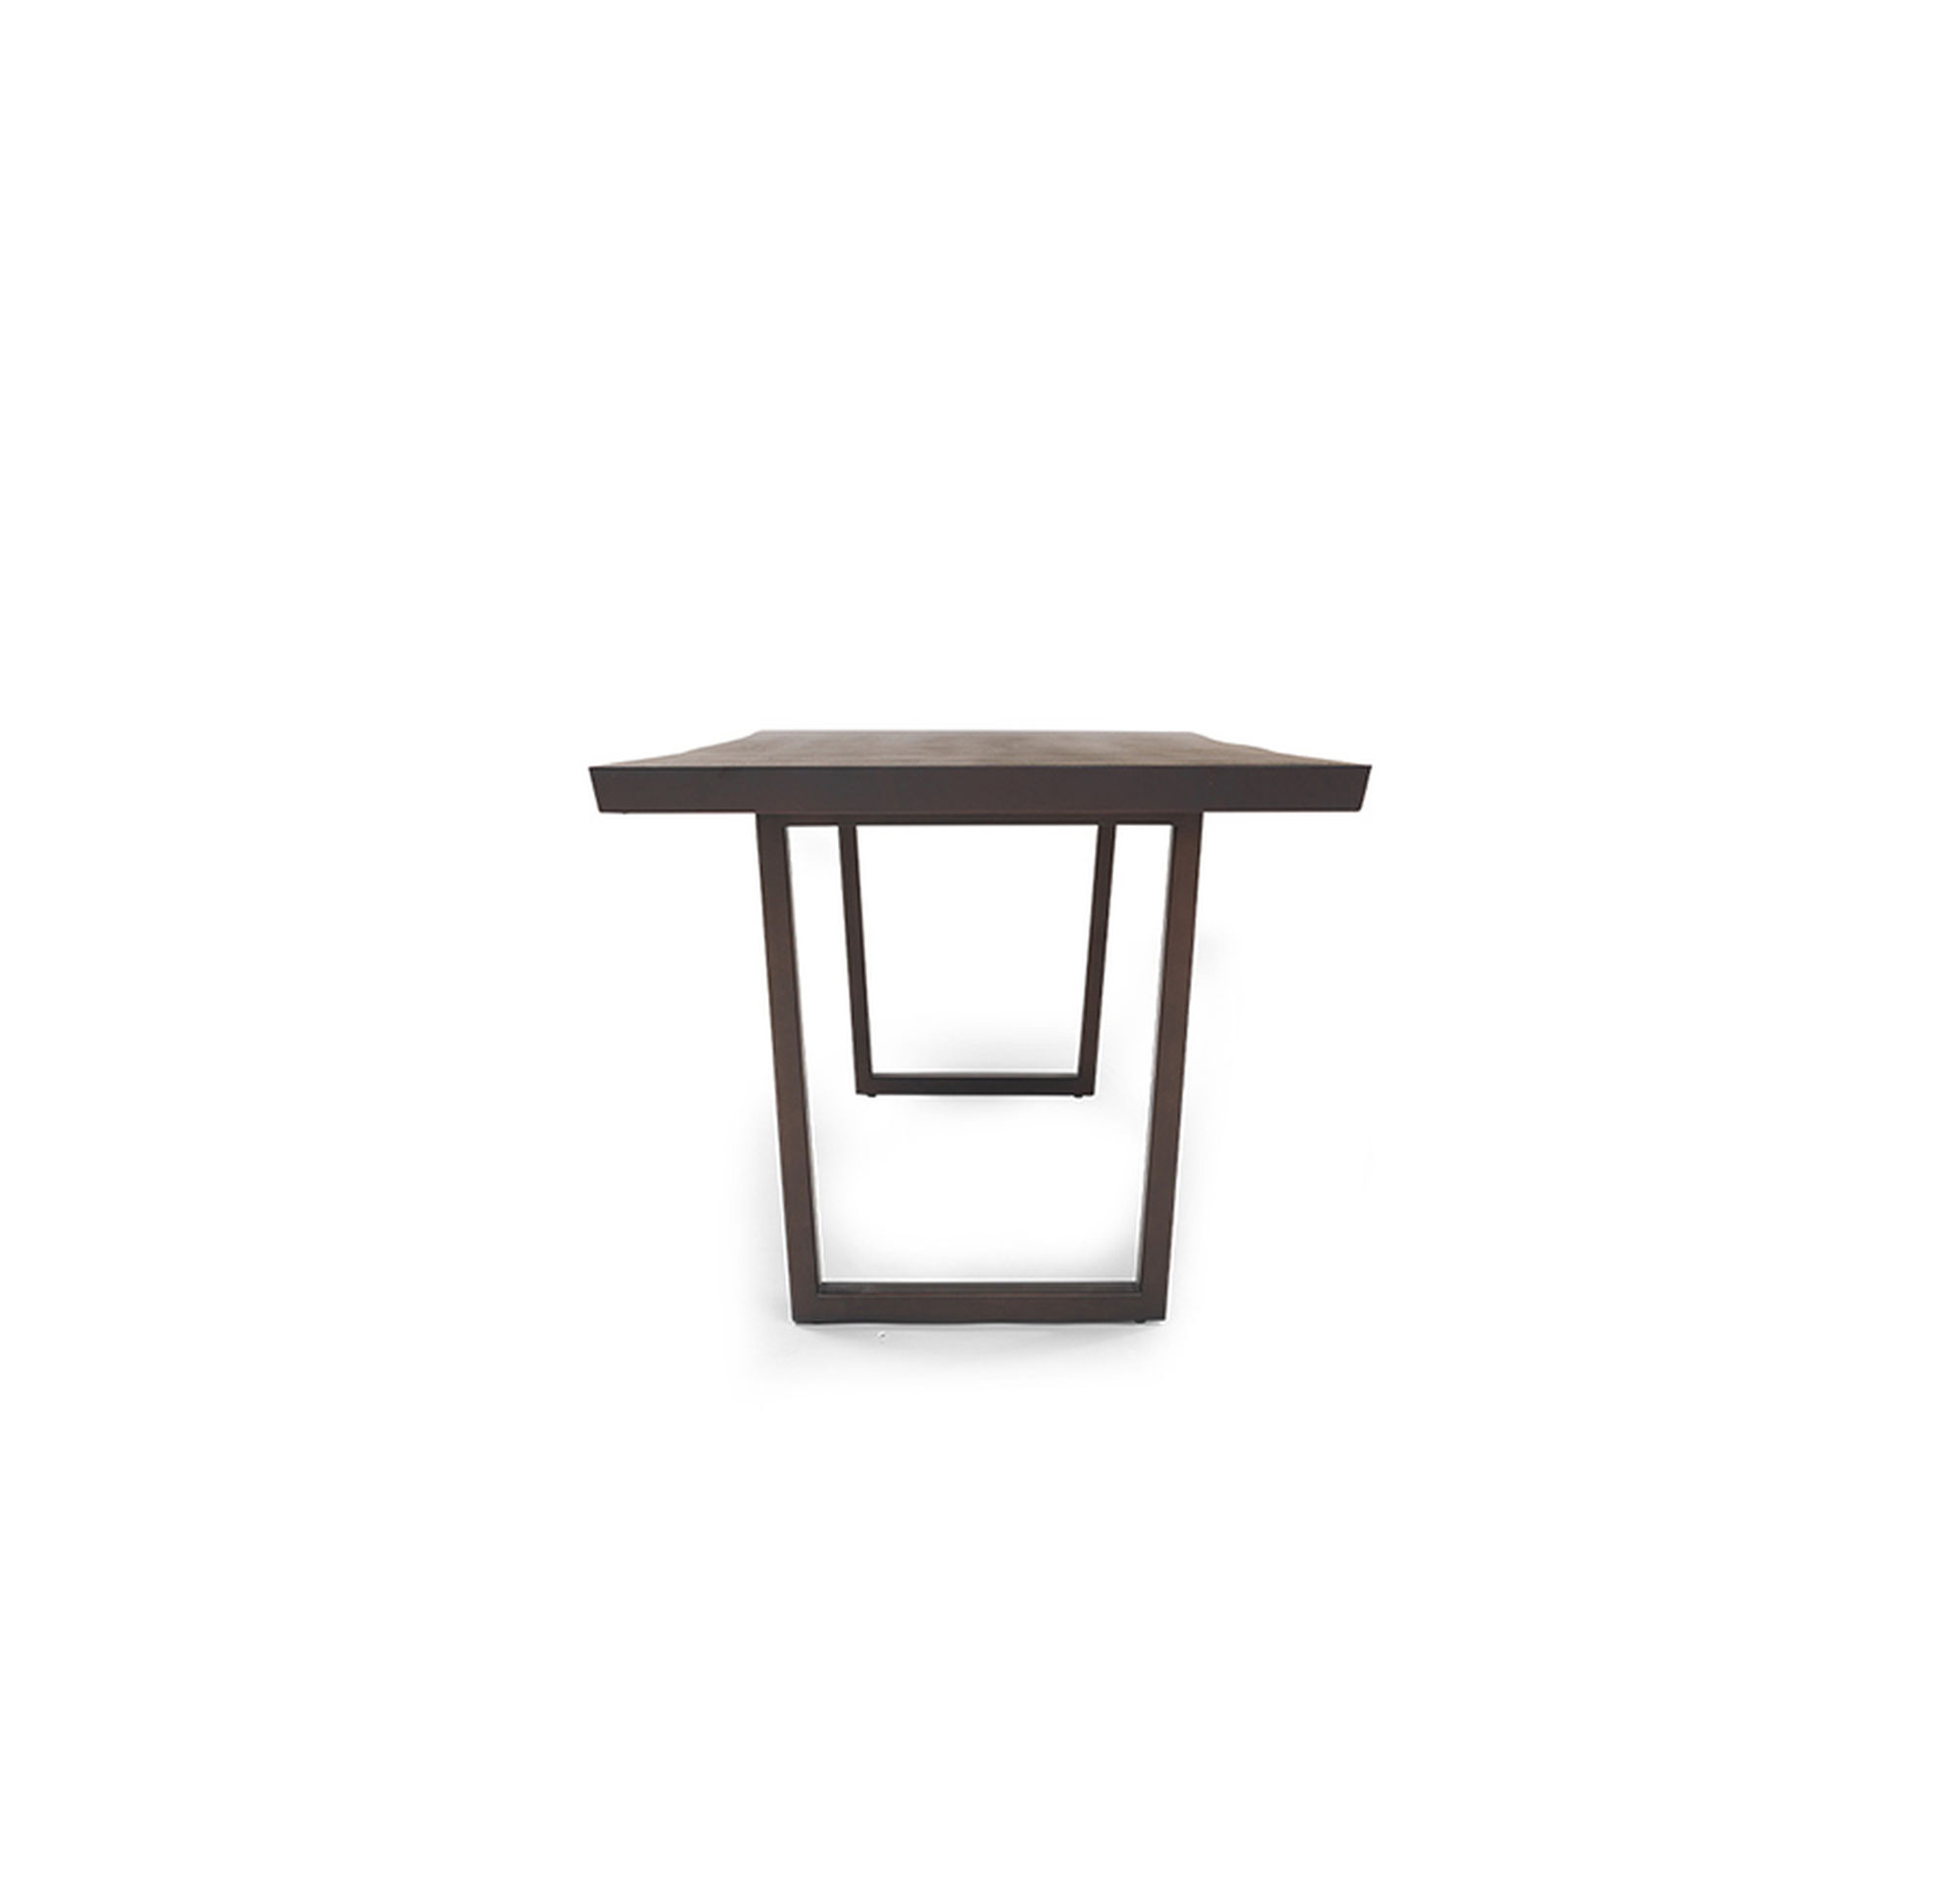 kimora dining table rosewood dnt accent dark brown coffee set thrive furniture sofa with matching end tables small outdoor seating ikea room barn style acrylic shelf house